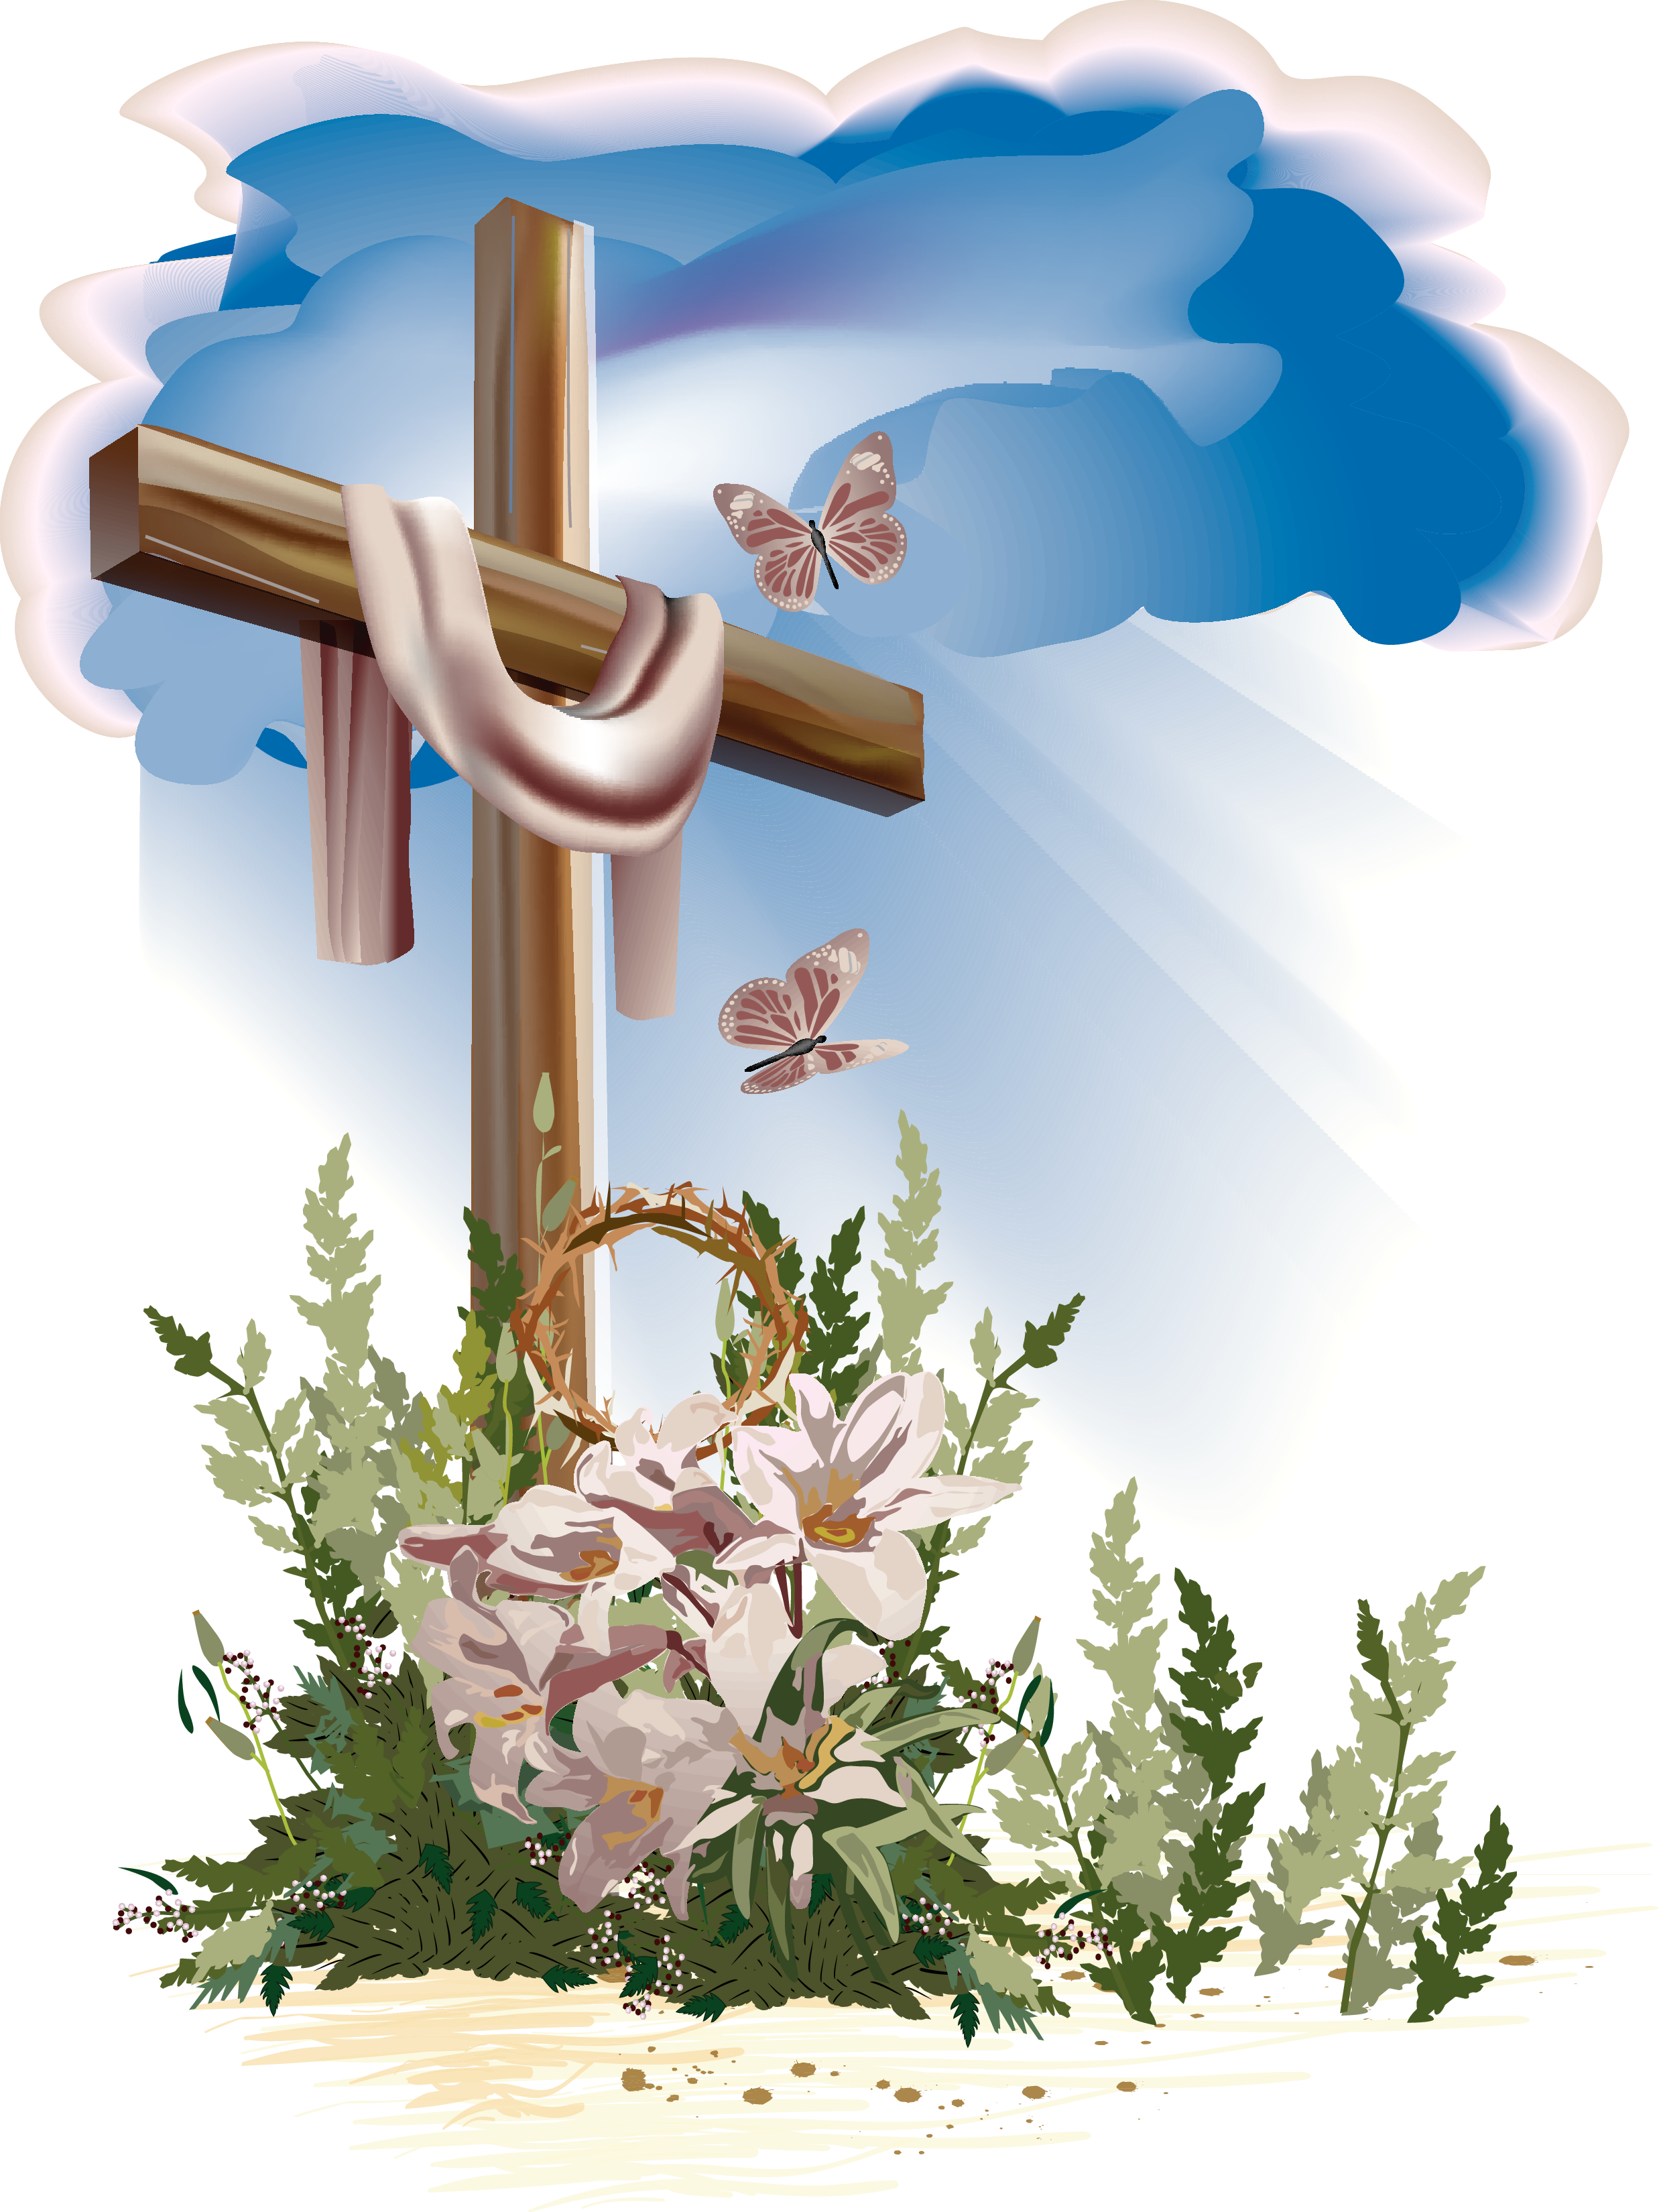 Easter flower cross clipart picture royalty free library http://bishopumc.org/hp_wordpress/wp-content/uploads/2013/03/Easter ... picture royalty free library